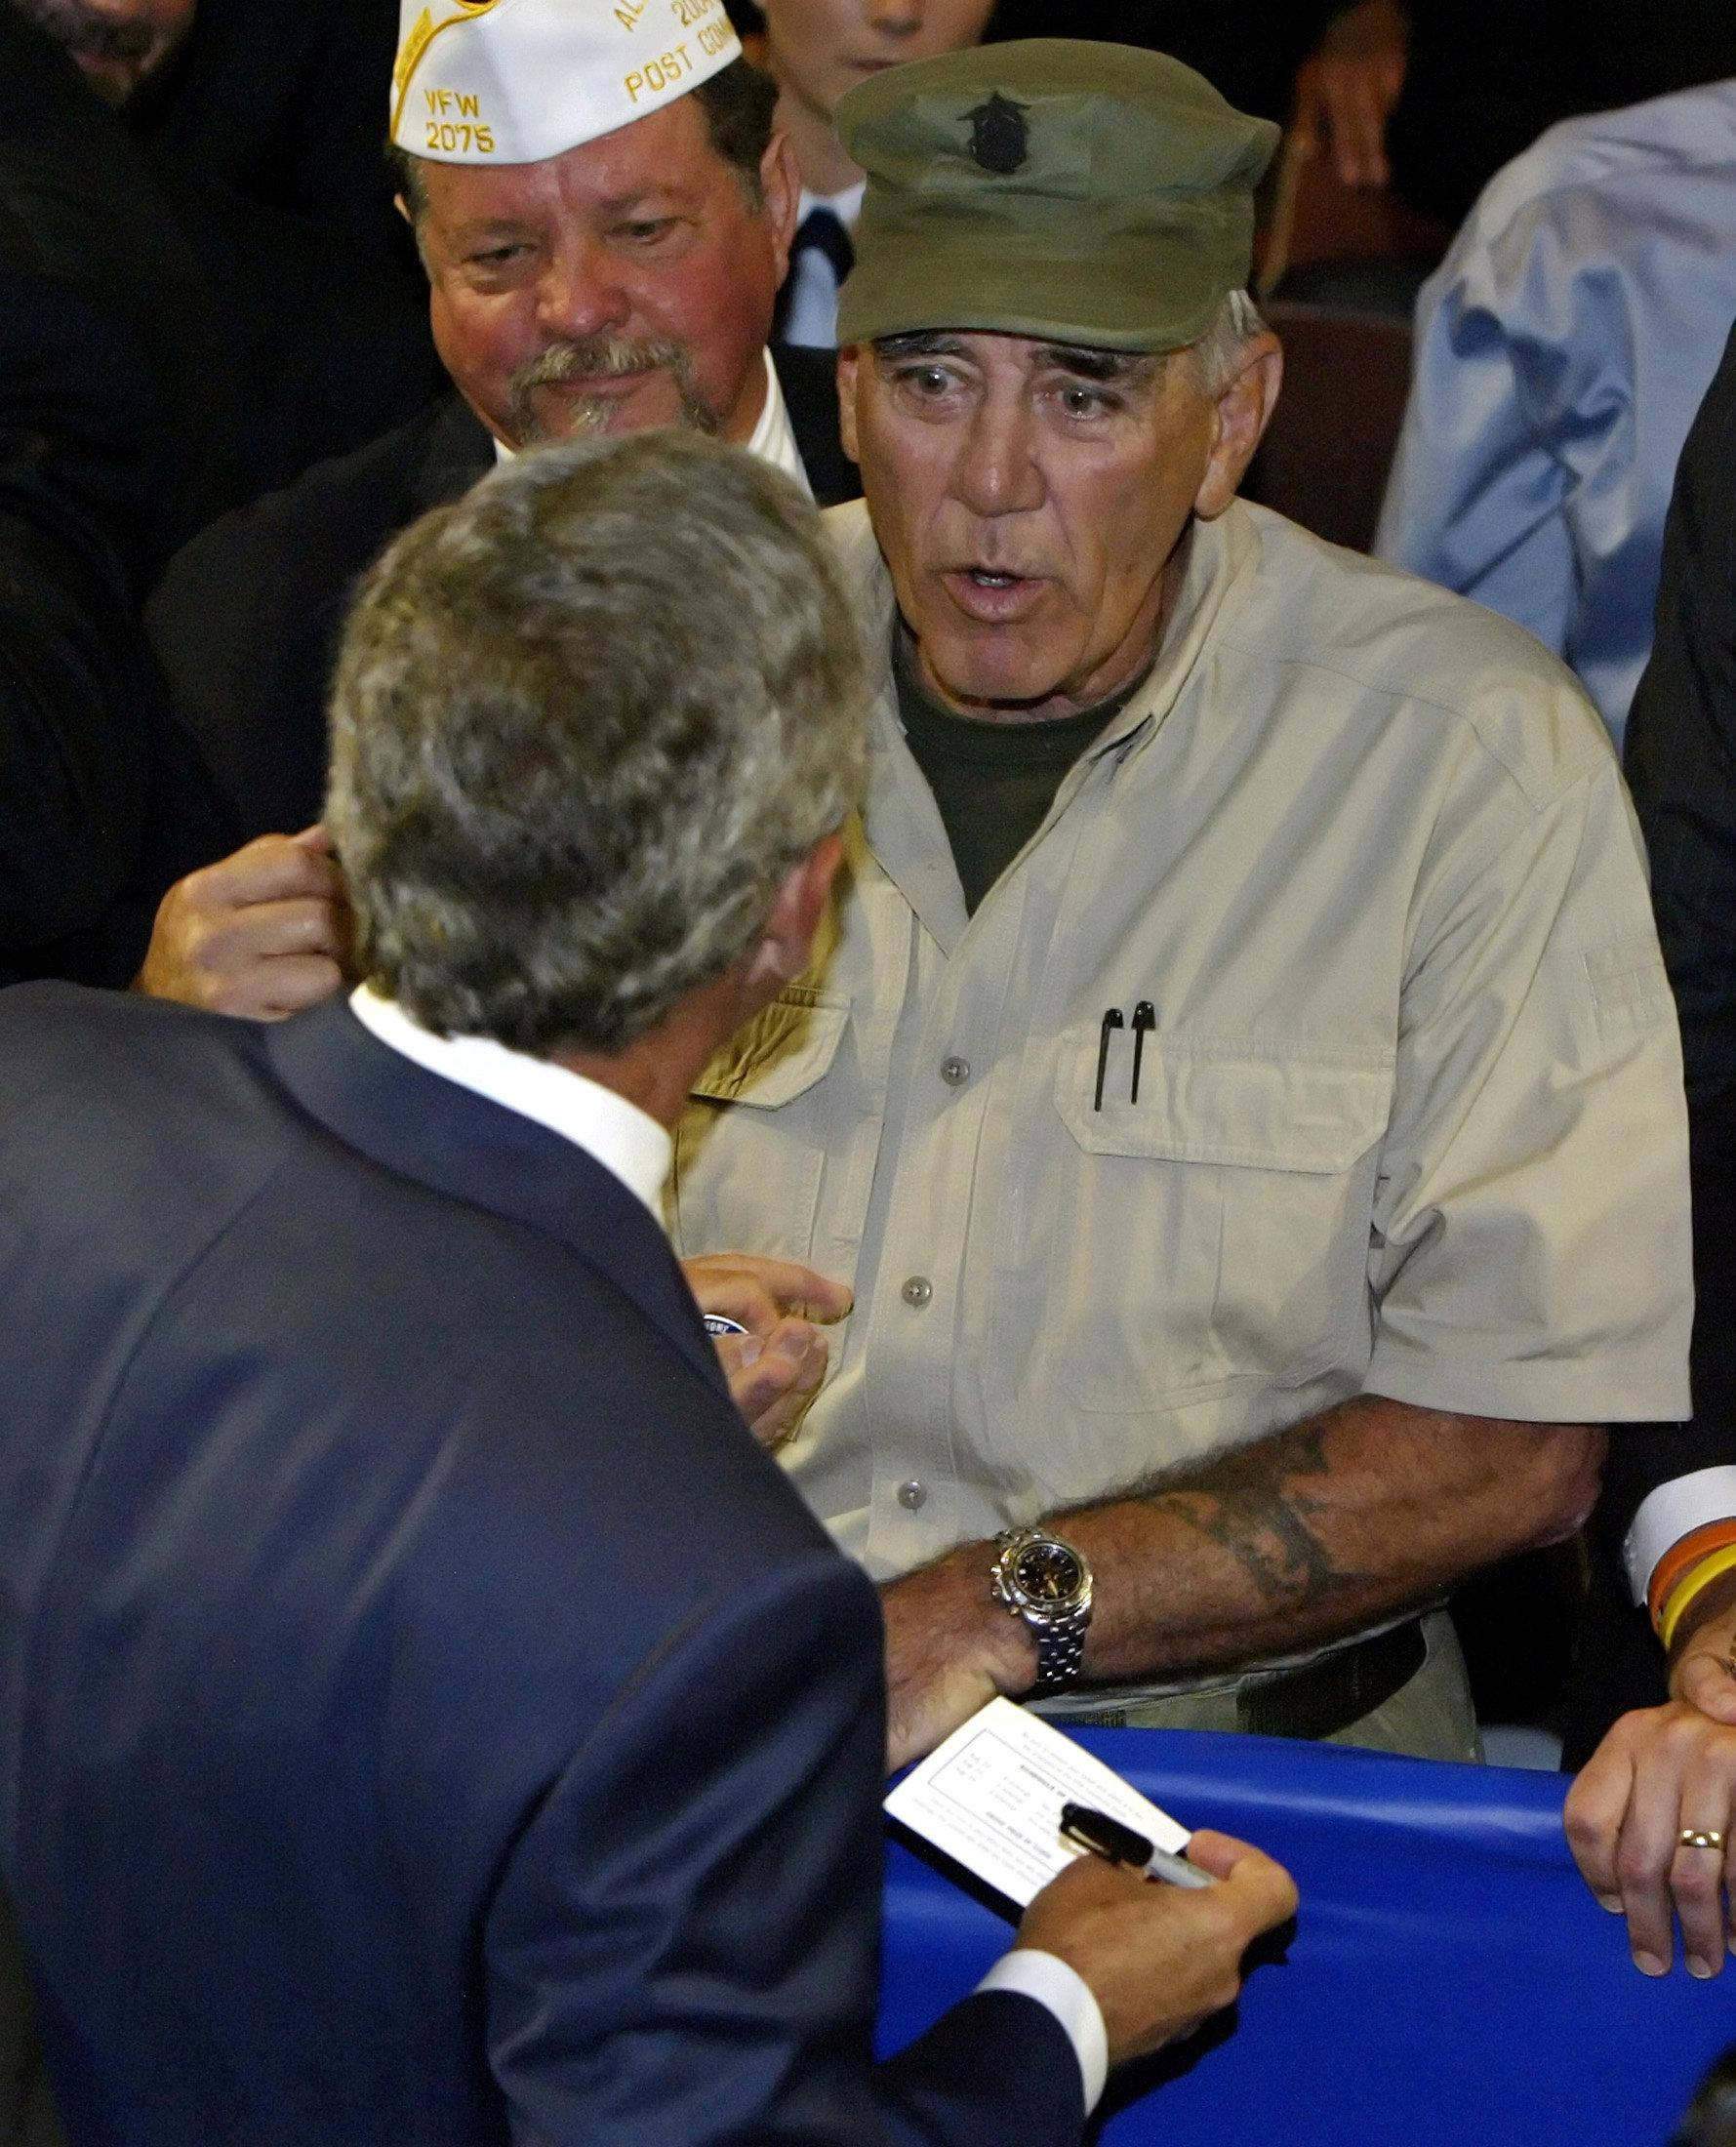 FILE PHOTO U.S. President George W. Bush (front) talks to actor and veteran R. Lee Ermey (R) at the Veterans of Foreign Wars (VFW) national convention in Salt Lake City, Utah, August 22, 2005. Jeff Mitchell